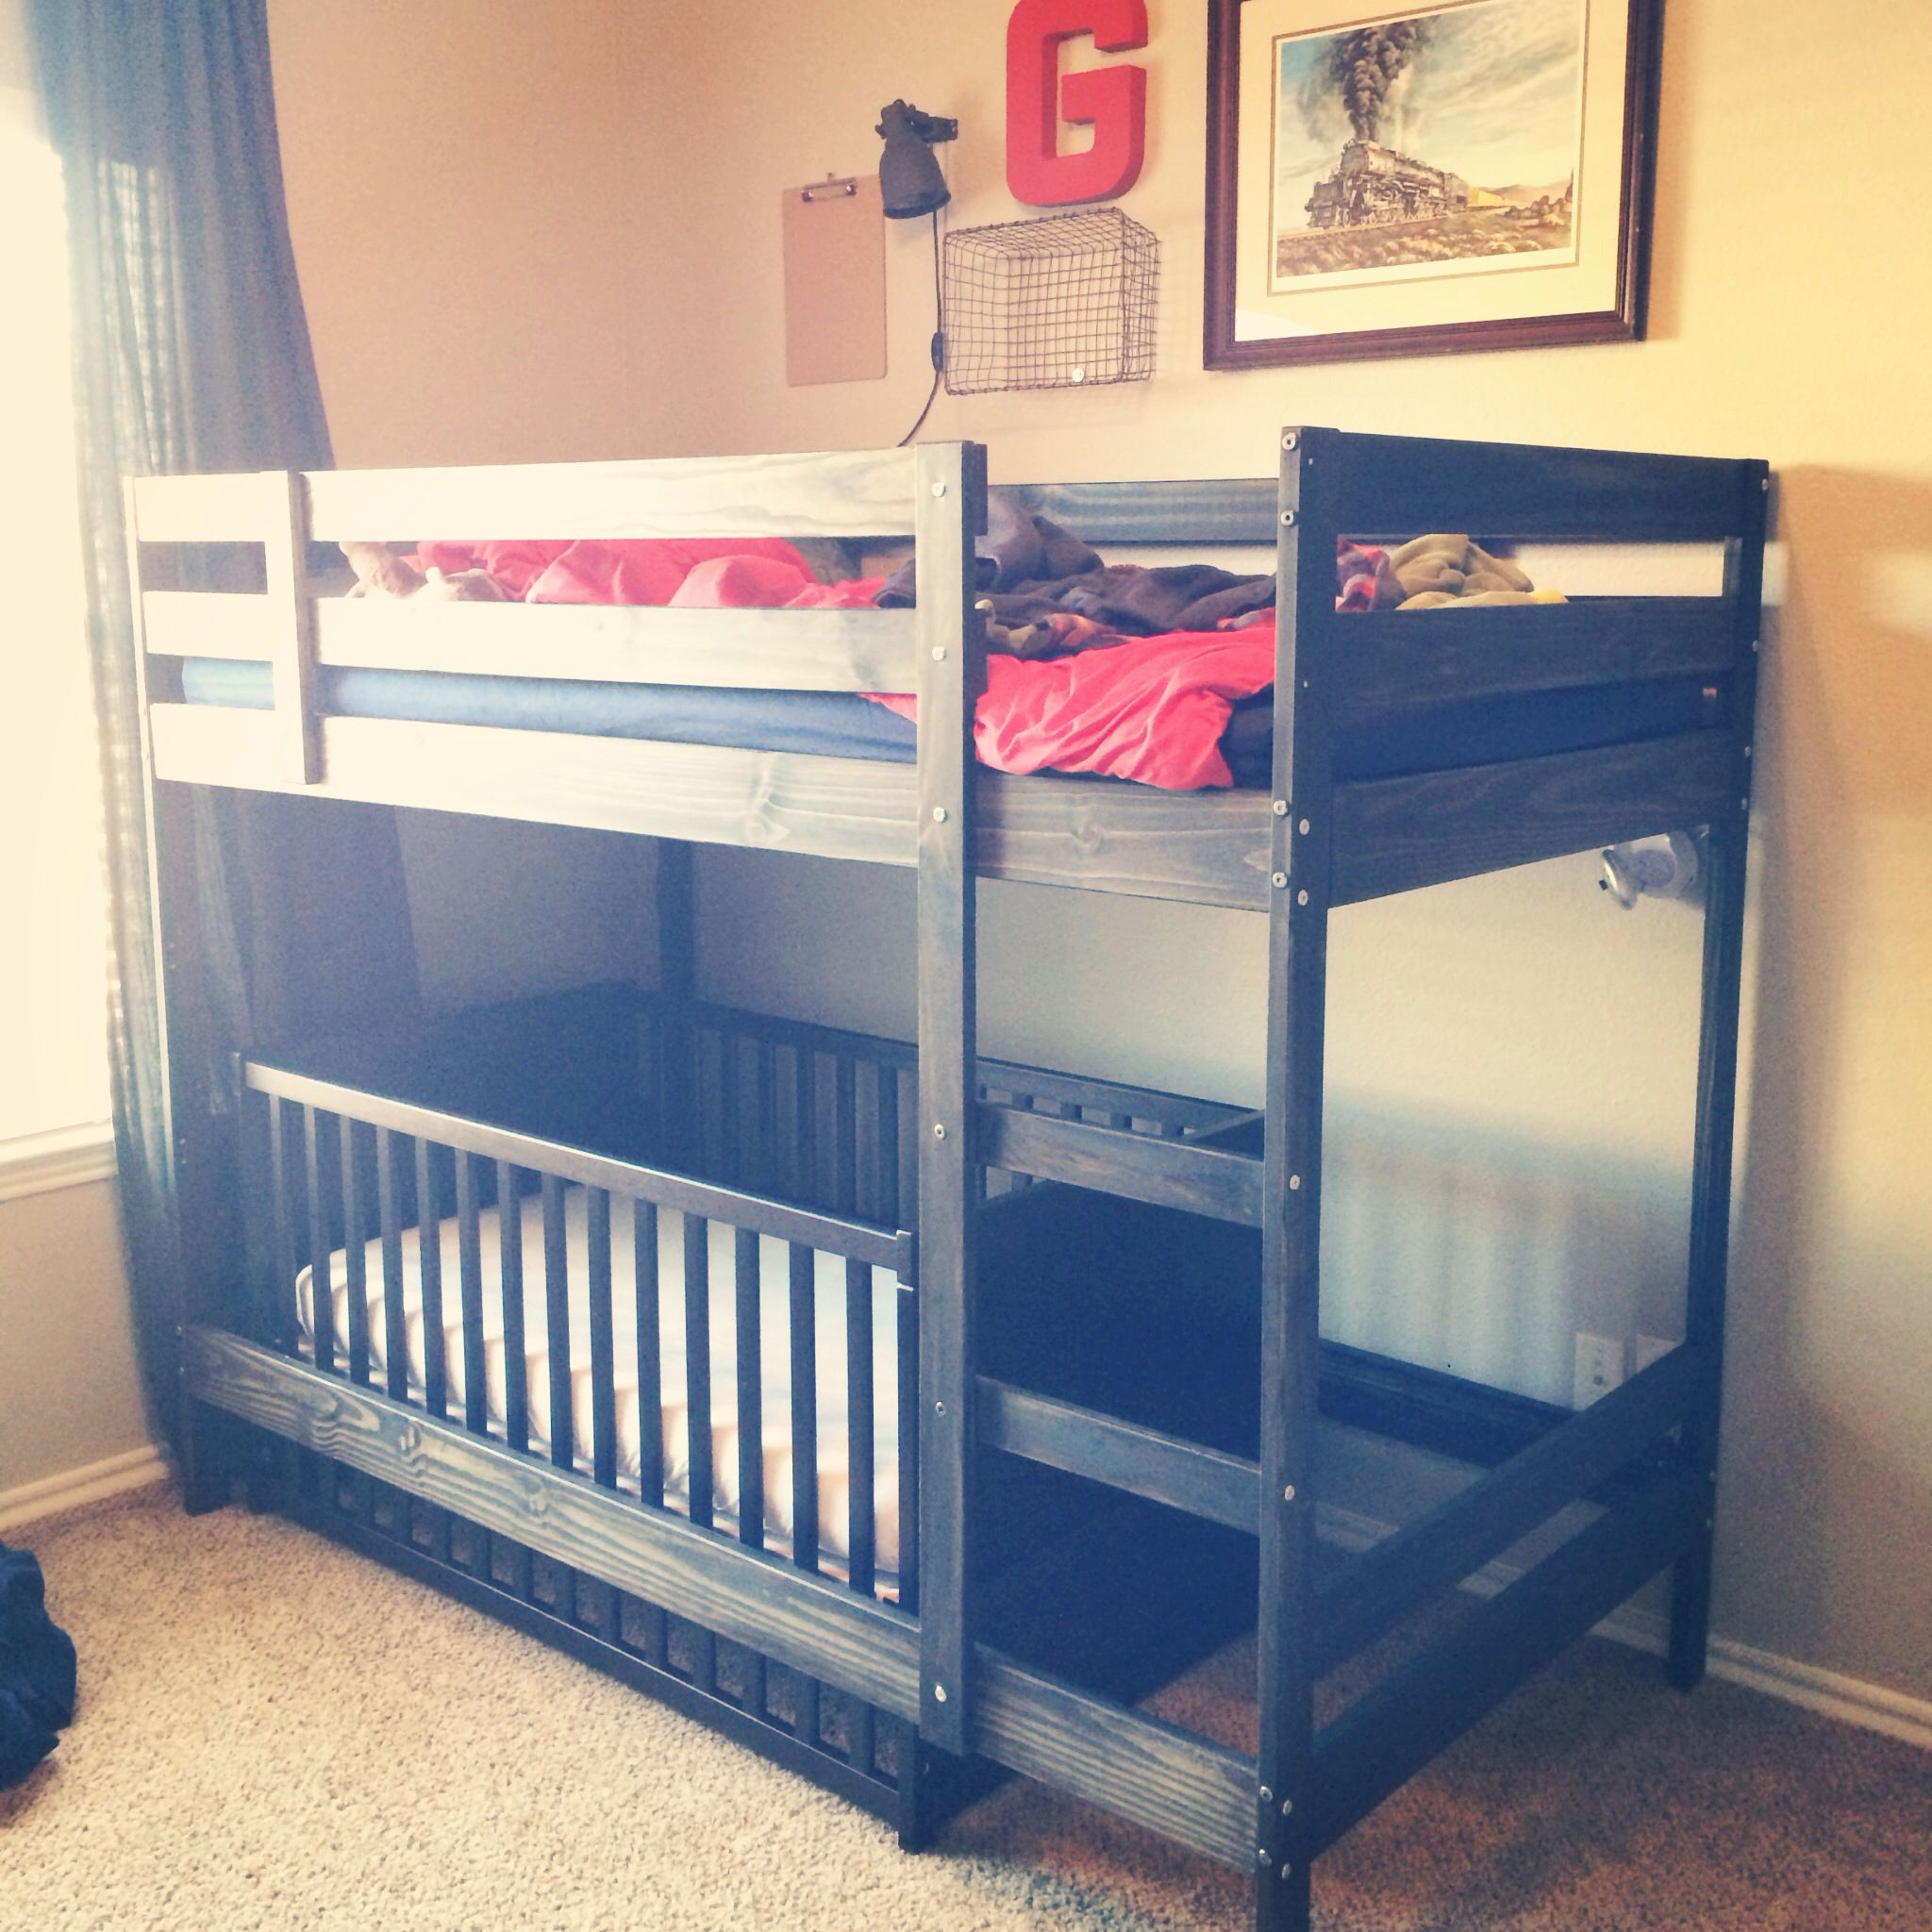 Best Boys Room Progress Shot Bunk Bed With Crib Underneath 400 x 300